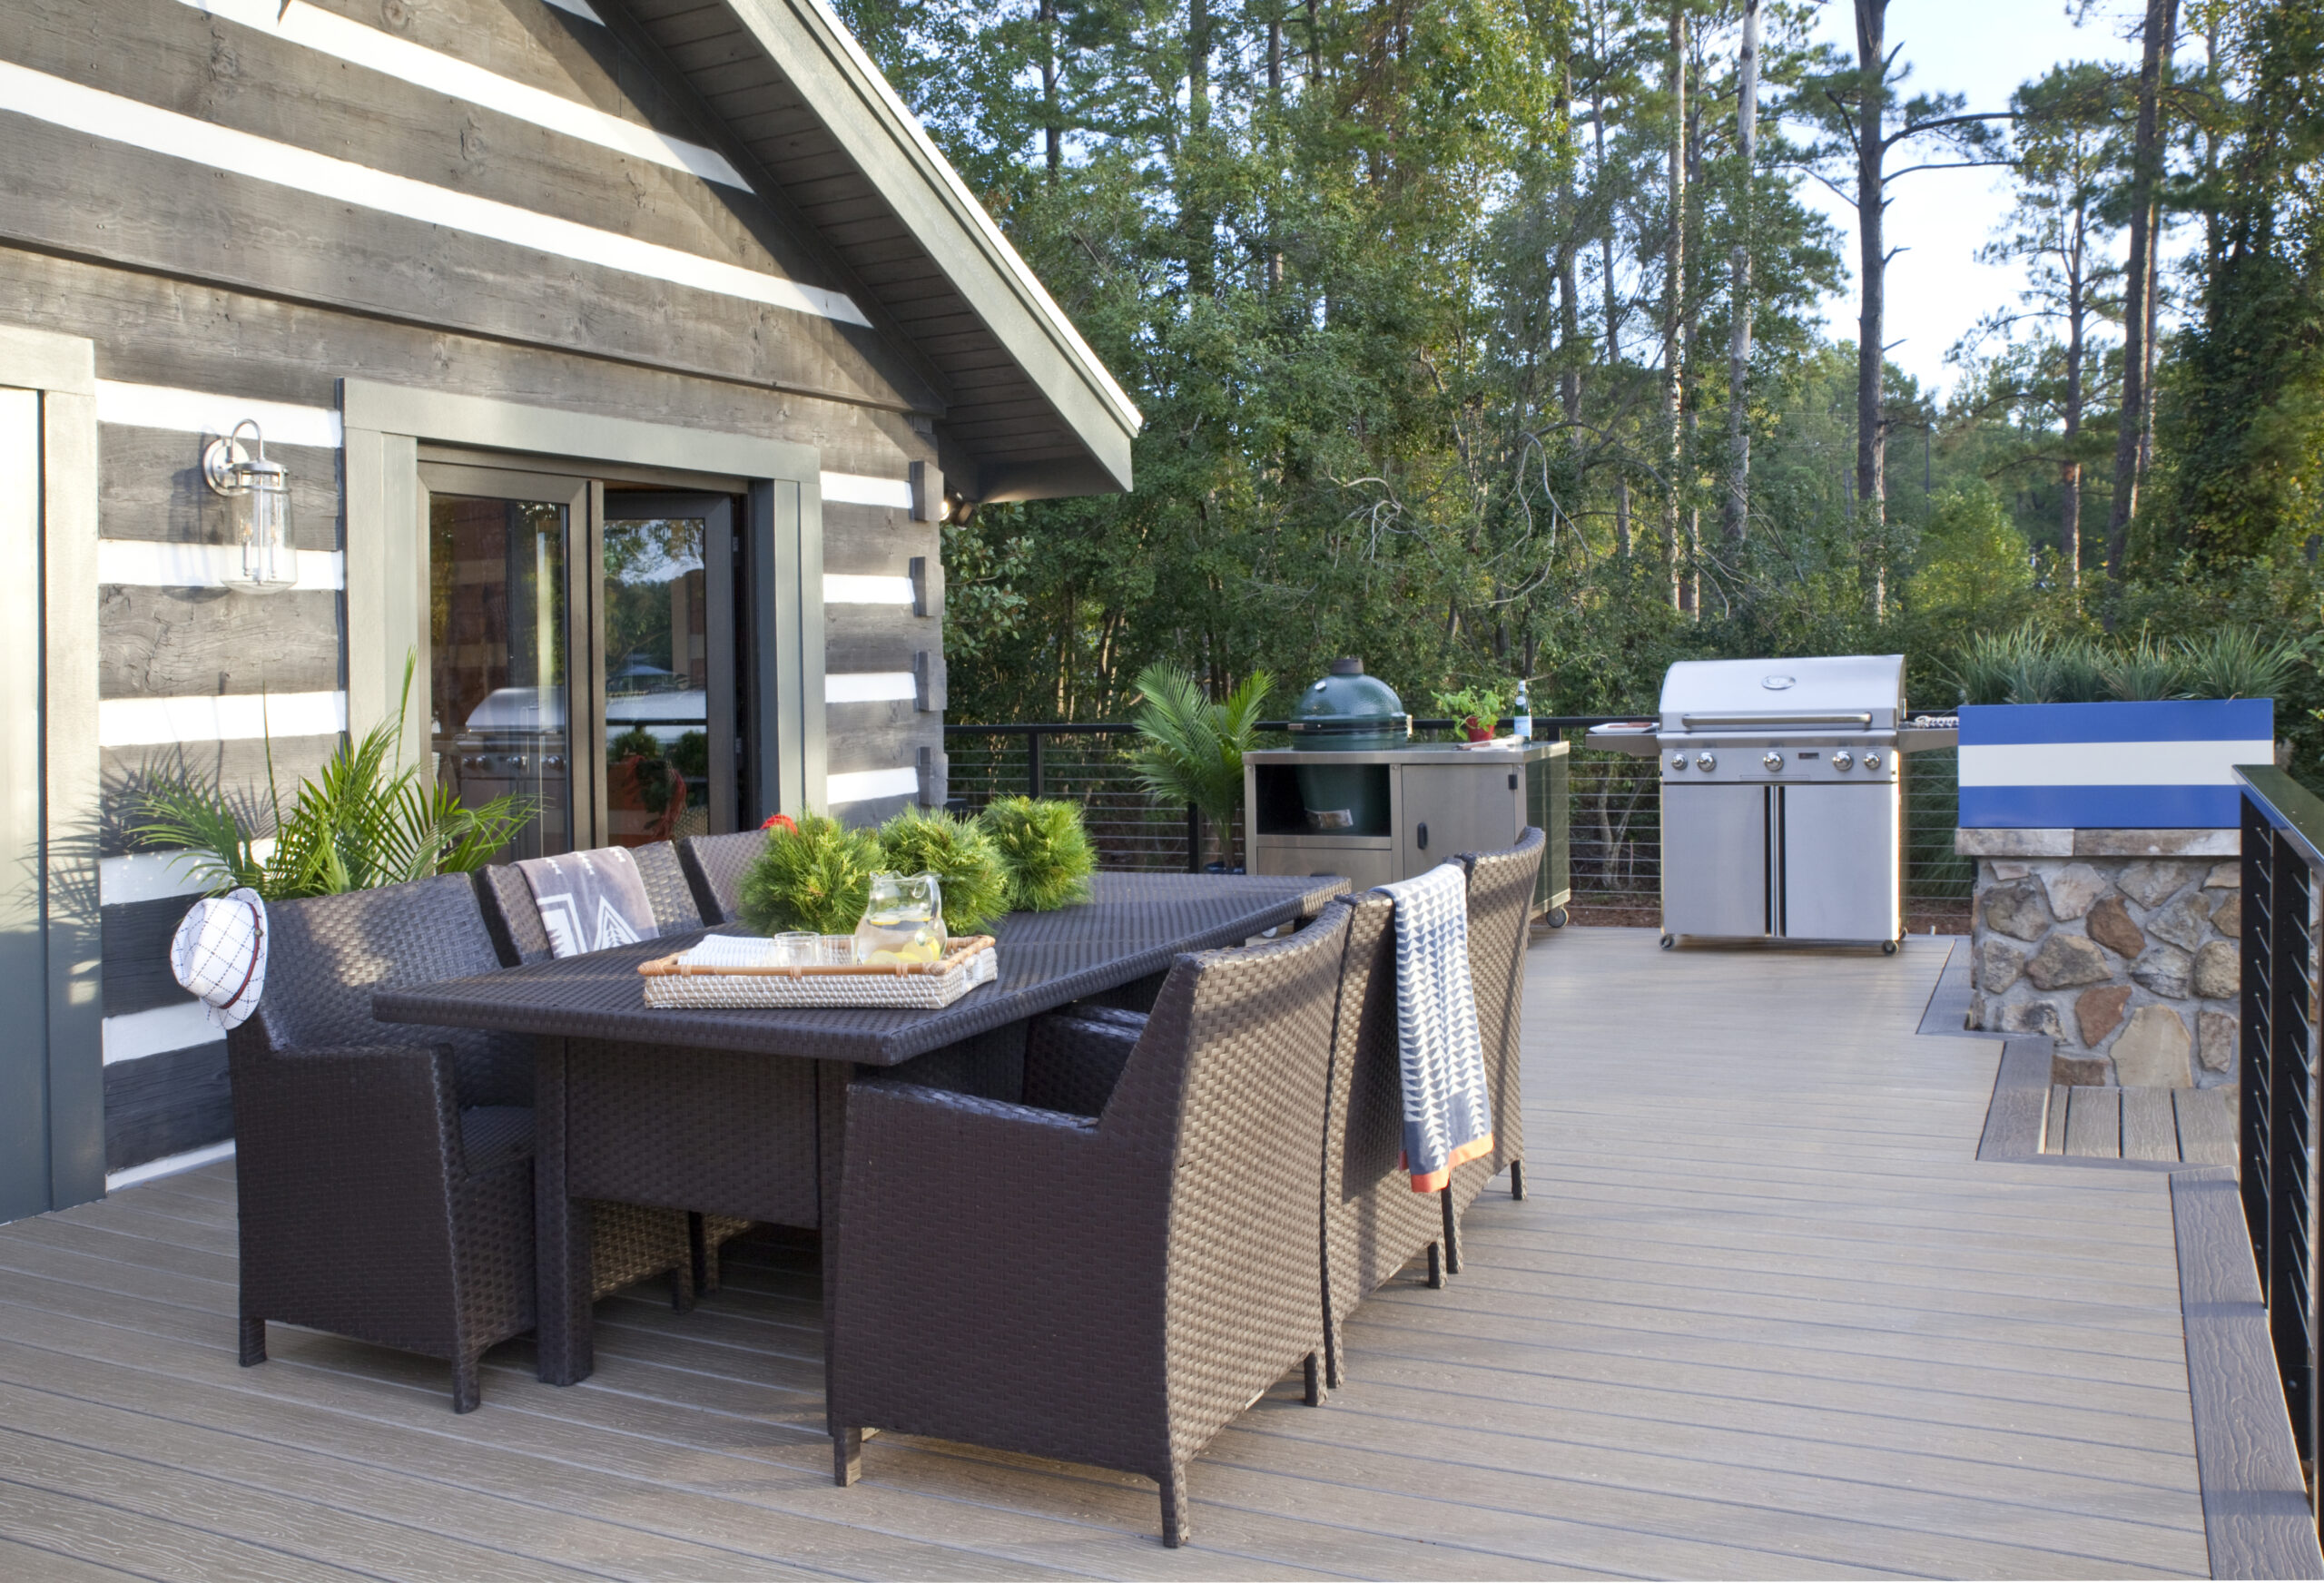 Kitchen and dining outdoor design (Christina Wedge)